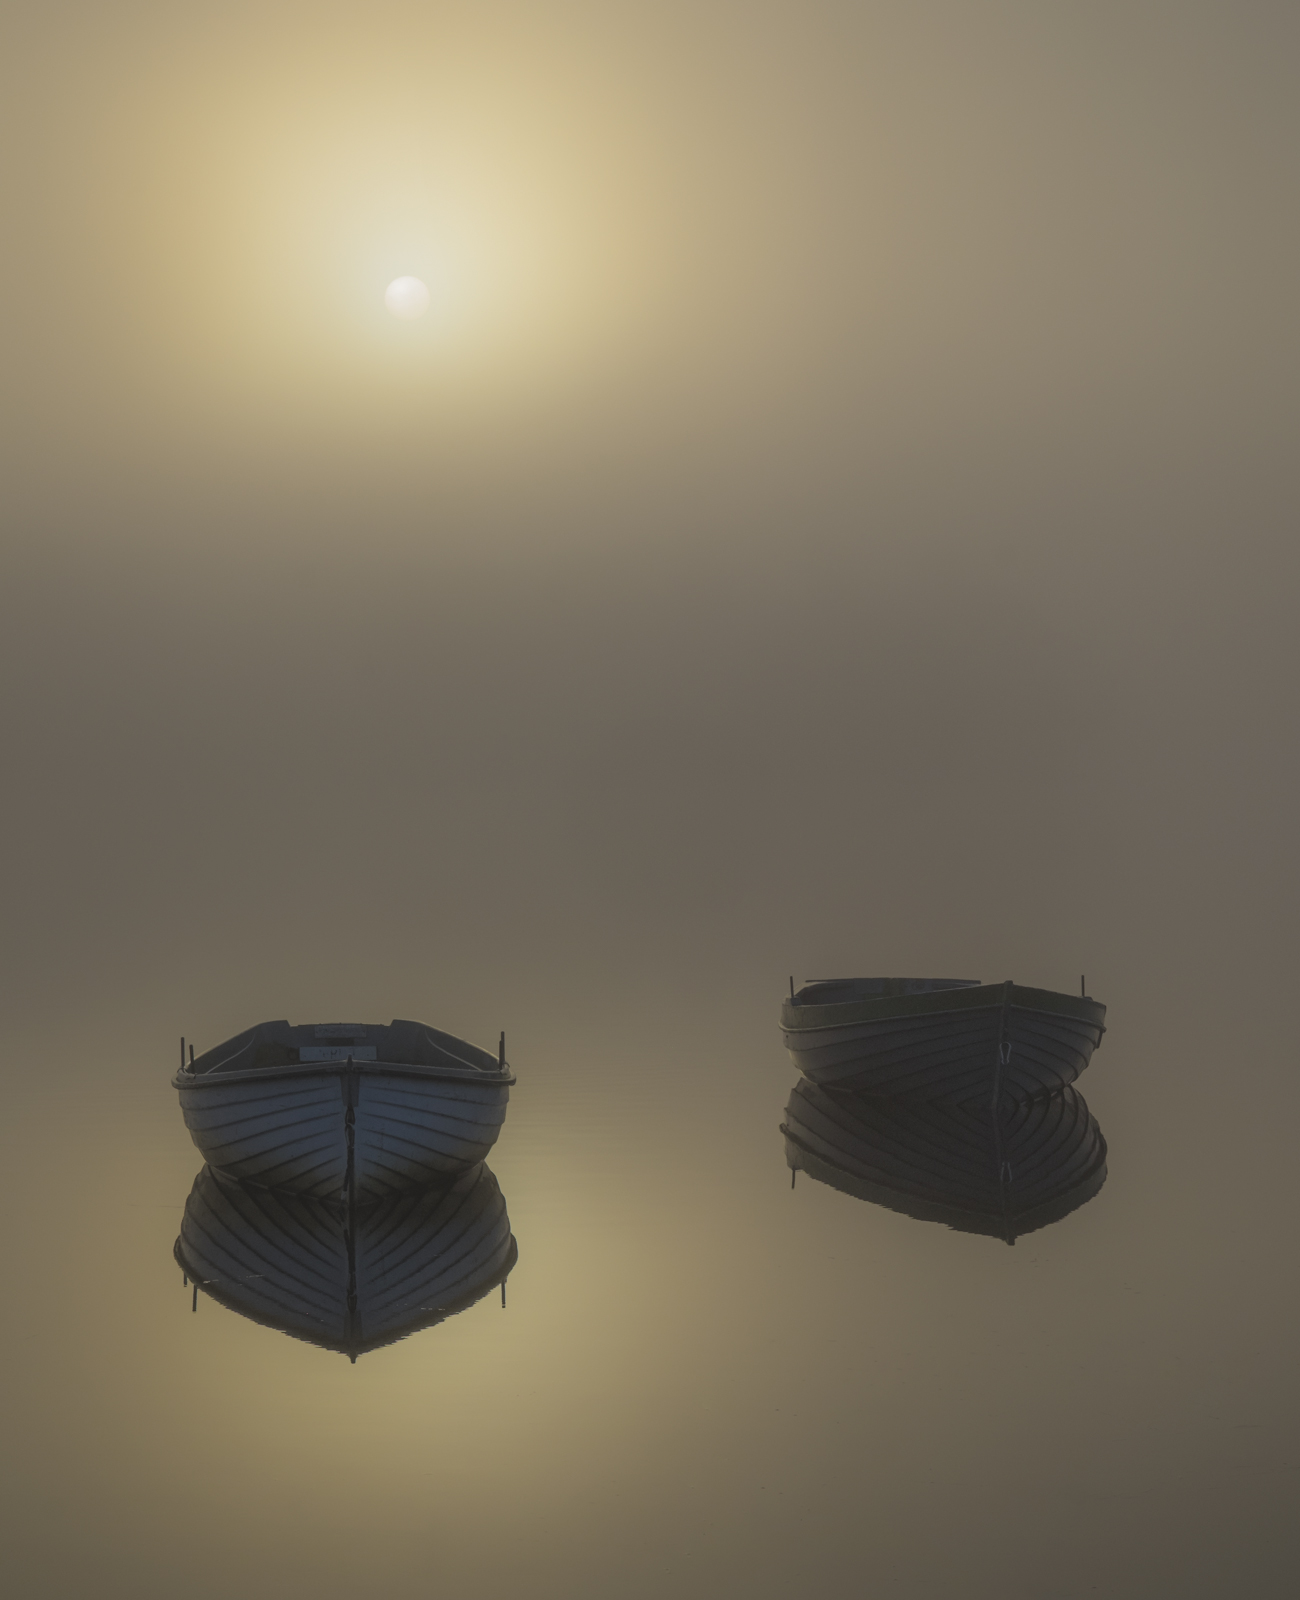 Twin Perfection, Loch Rusky, Trossachs, Scotland, two, pale, wooden, boats, shroud, holy, golden, reverence, sun, orb, m, photo